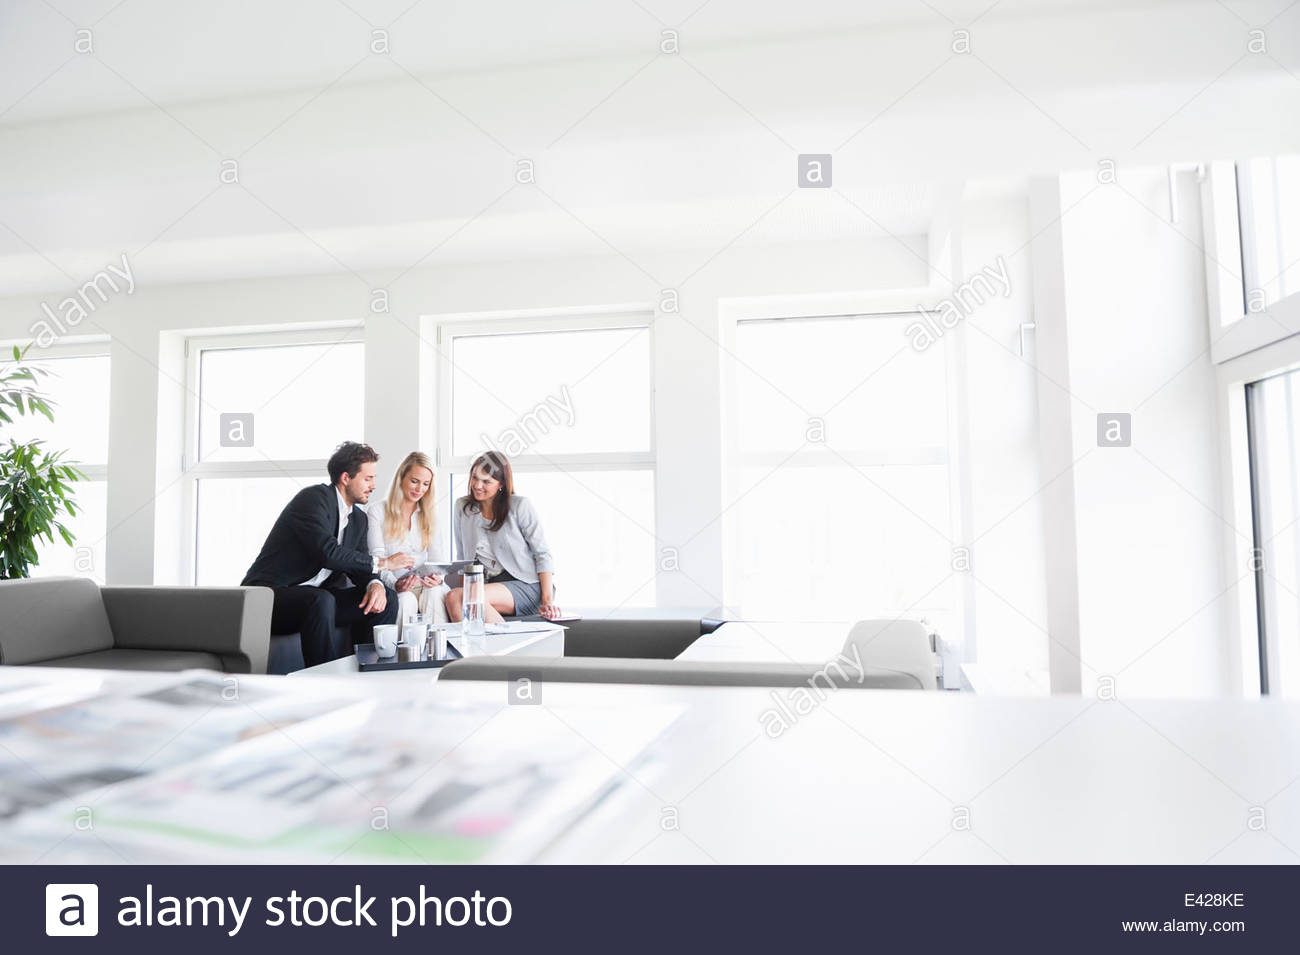 Business Office Photo Stock